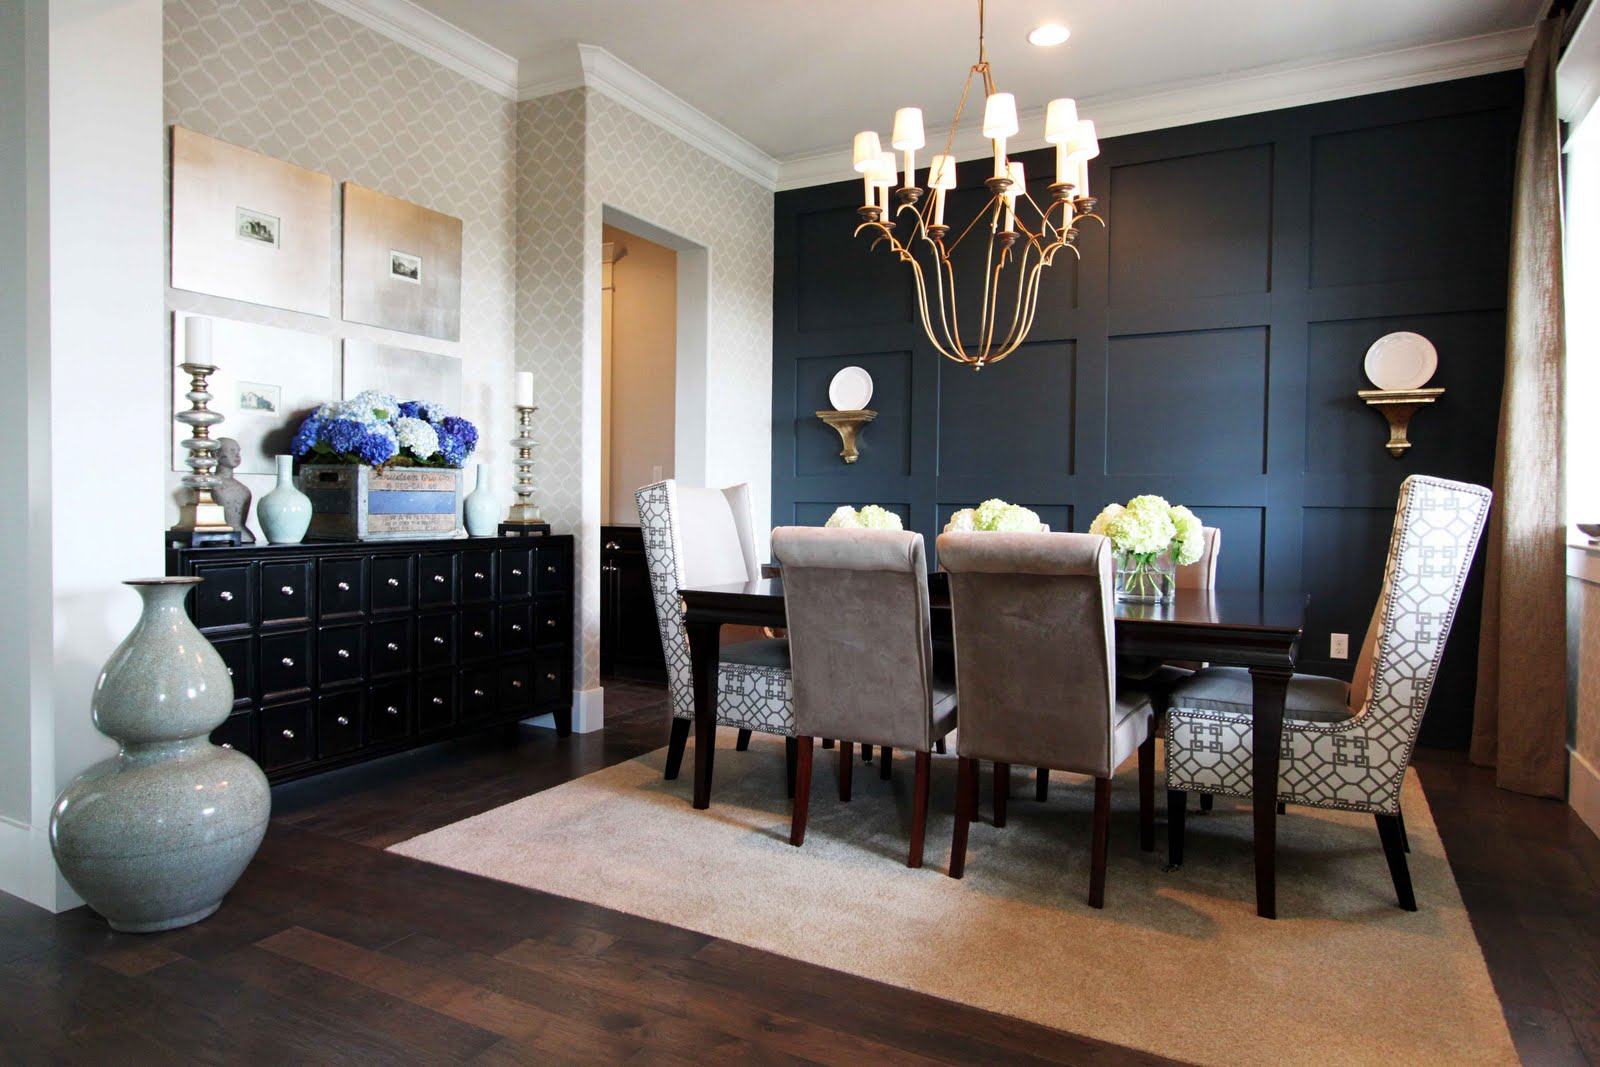 Stiles fischer interior design hgtv showhouse showdown - Black walls in dining room ...